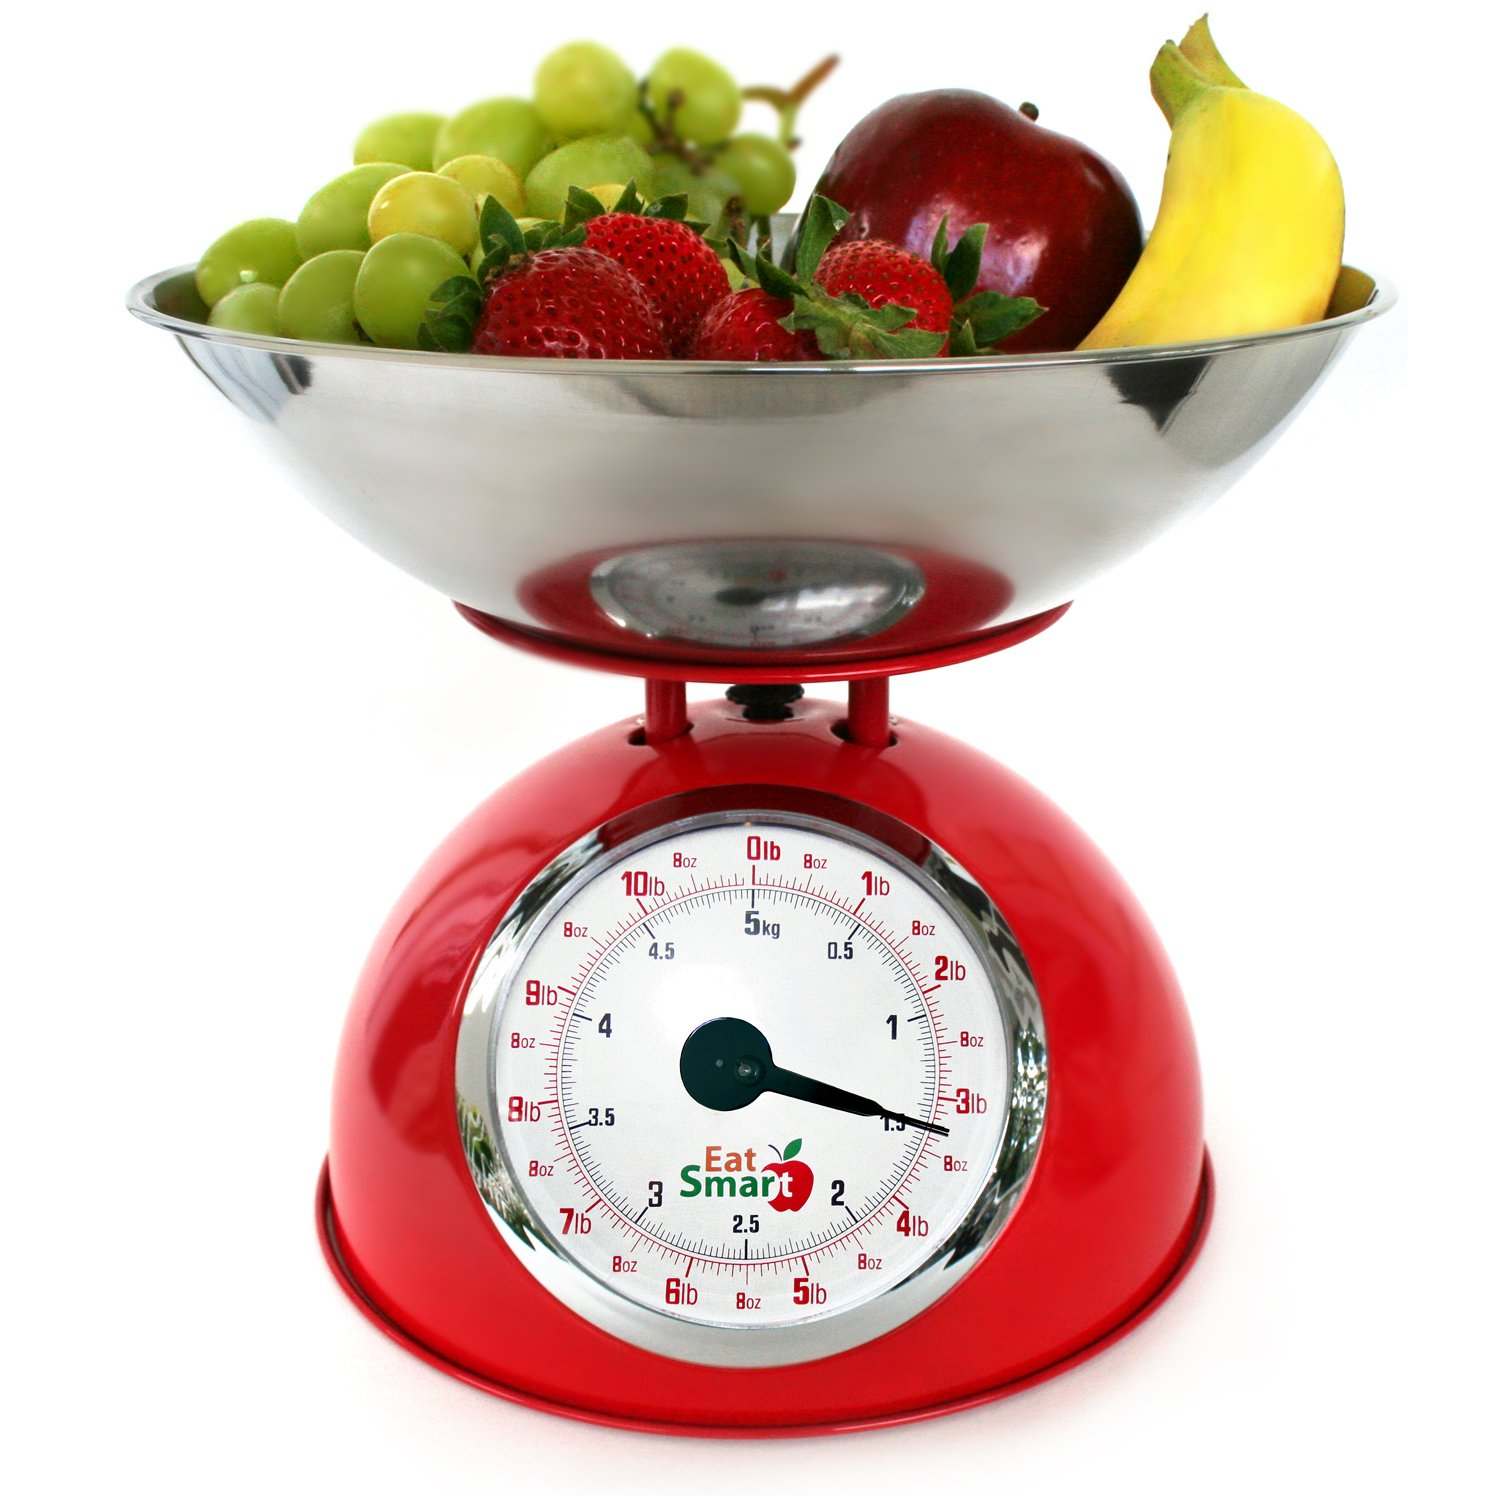 portable steelyard measuring kitchen product postal libra digital x food scale scales store balance electronic lcd weight